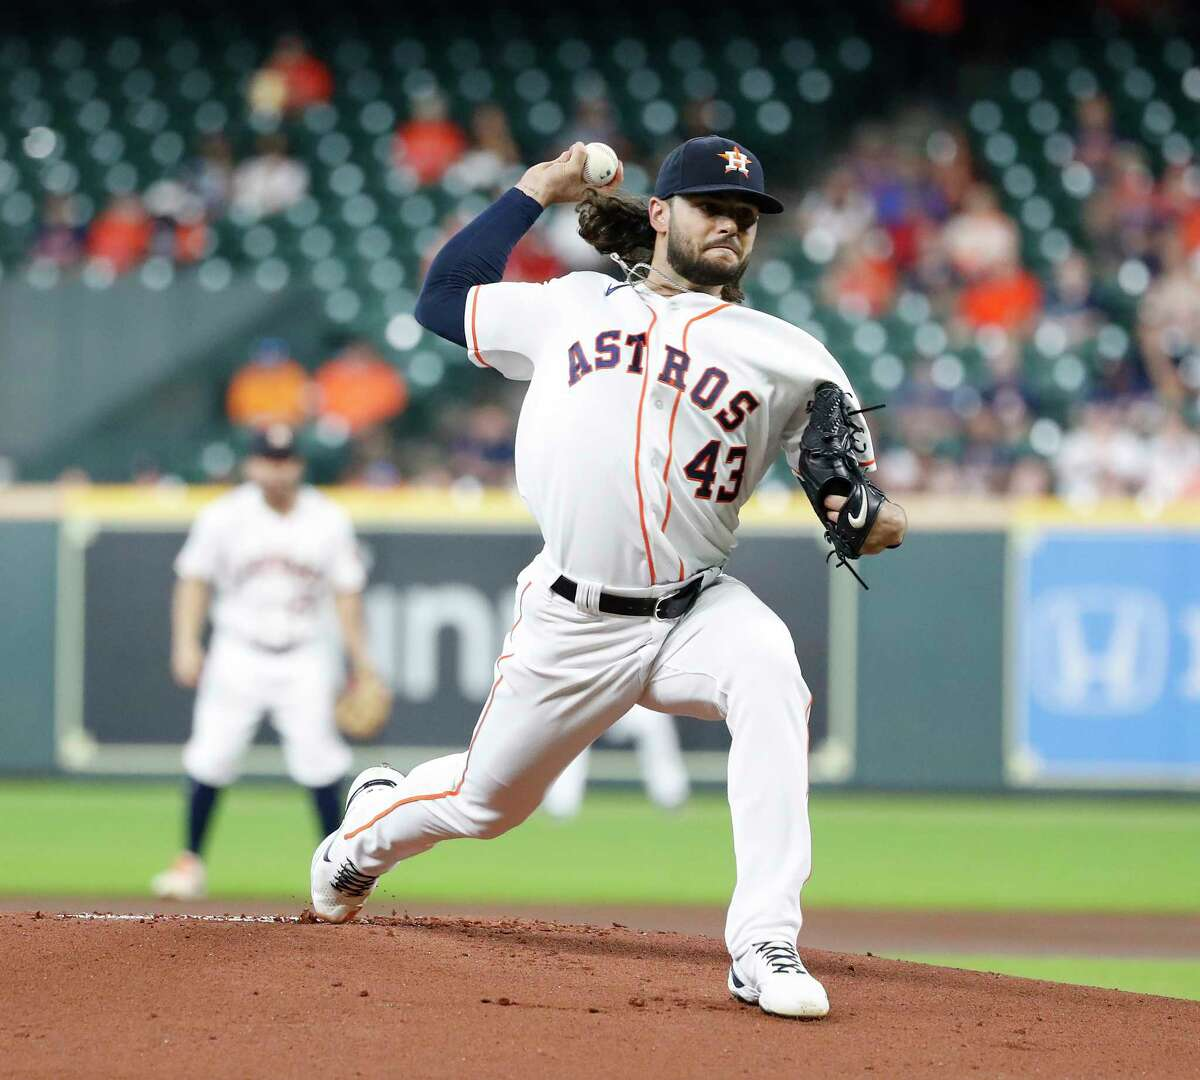 Houston Astros starting pitcher Lance McCullers Jr. (43) pitches during the first inning of an MLB baseball game at Minute Maid Park, Wednesday, August 25, 2021, in Houston.